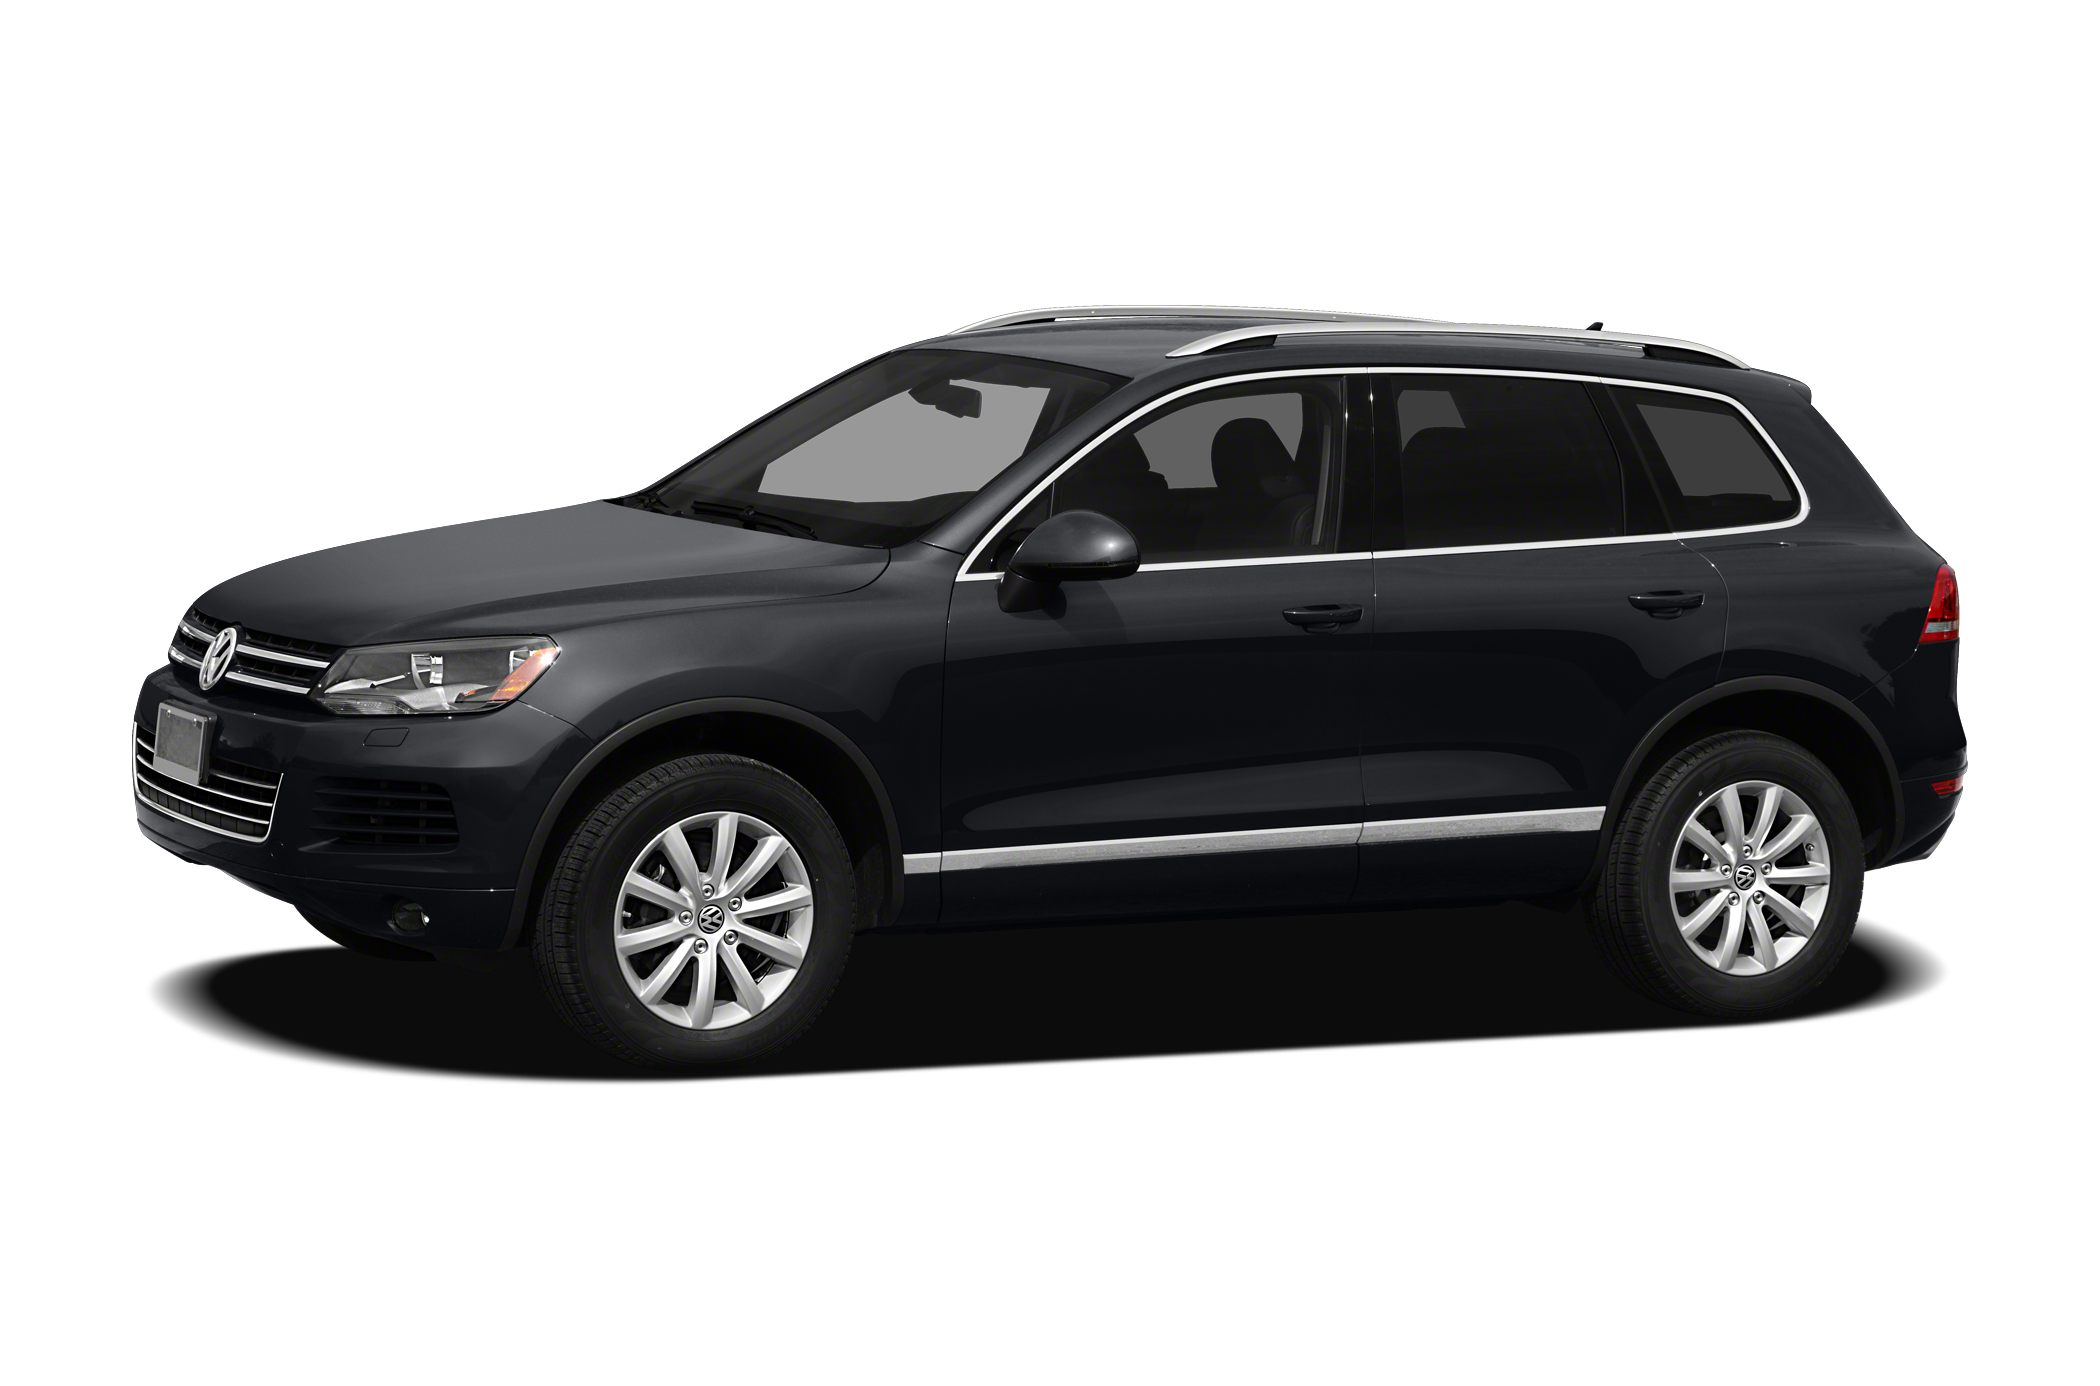 2012 Volkswagen Touareg VR6 Executive 4dr All wheel Drive 4MOTION